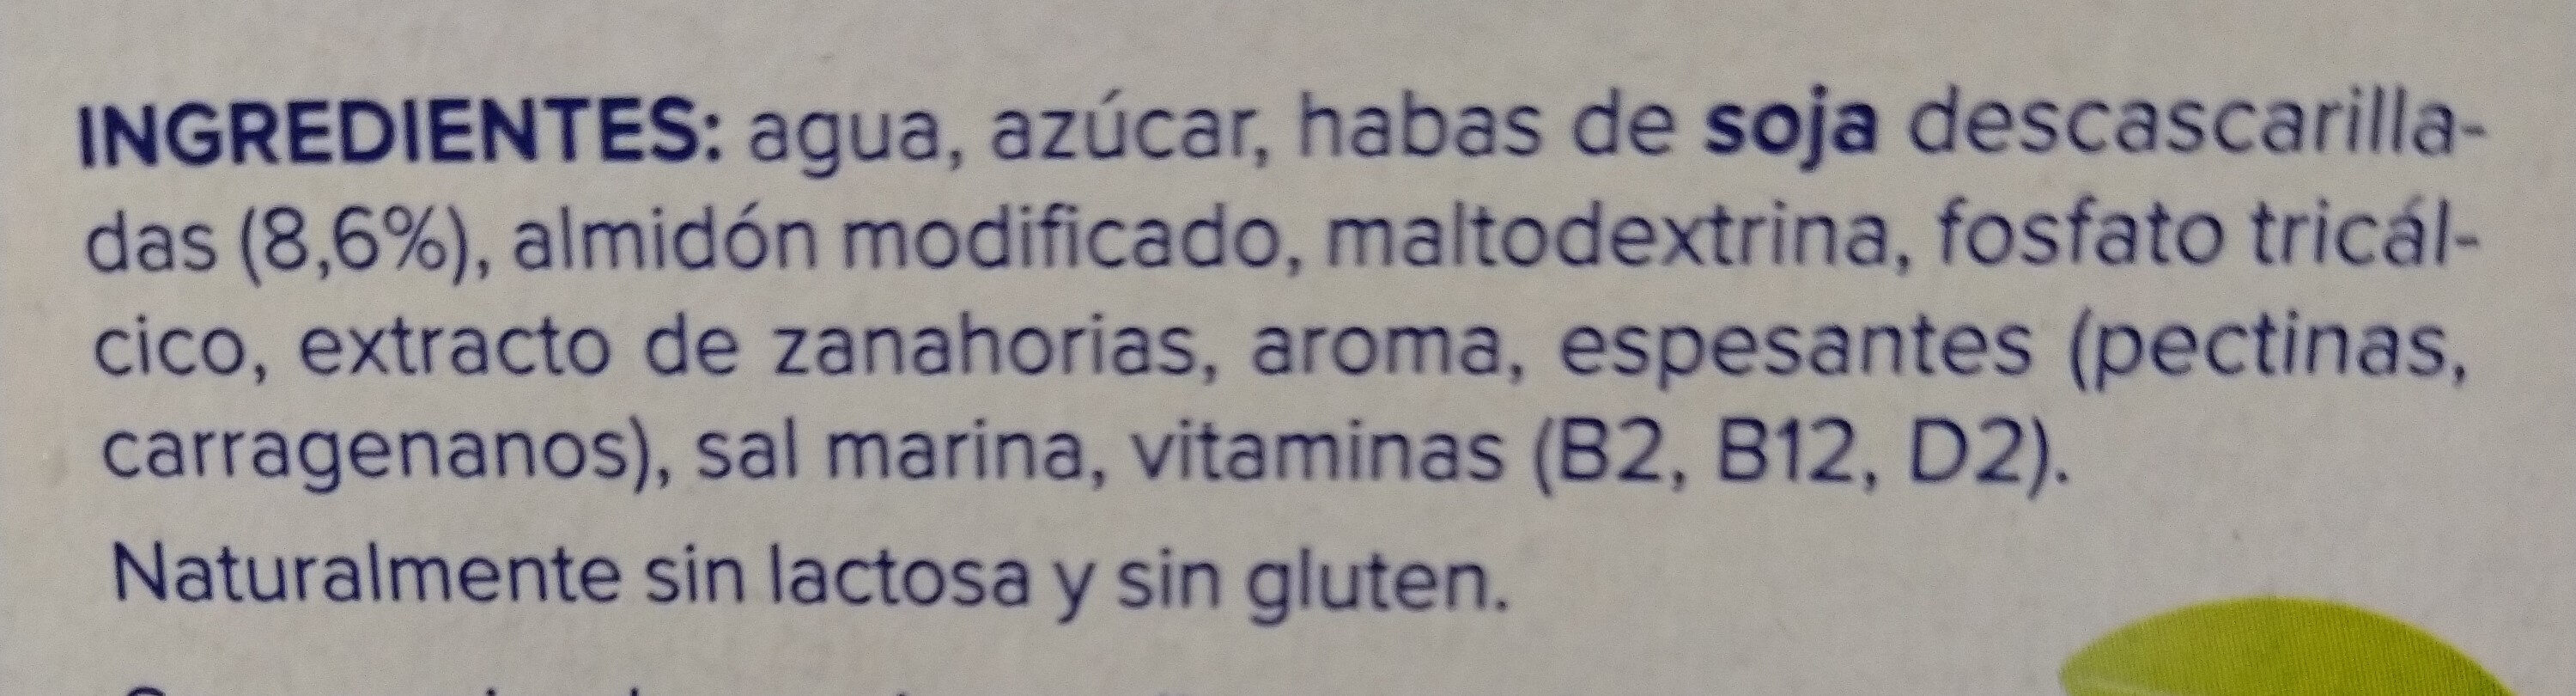 Postre de soja sabor vainilla - Ingredients